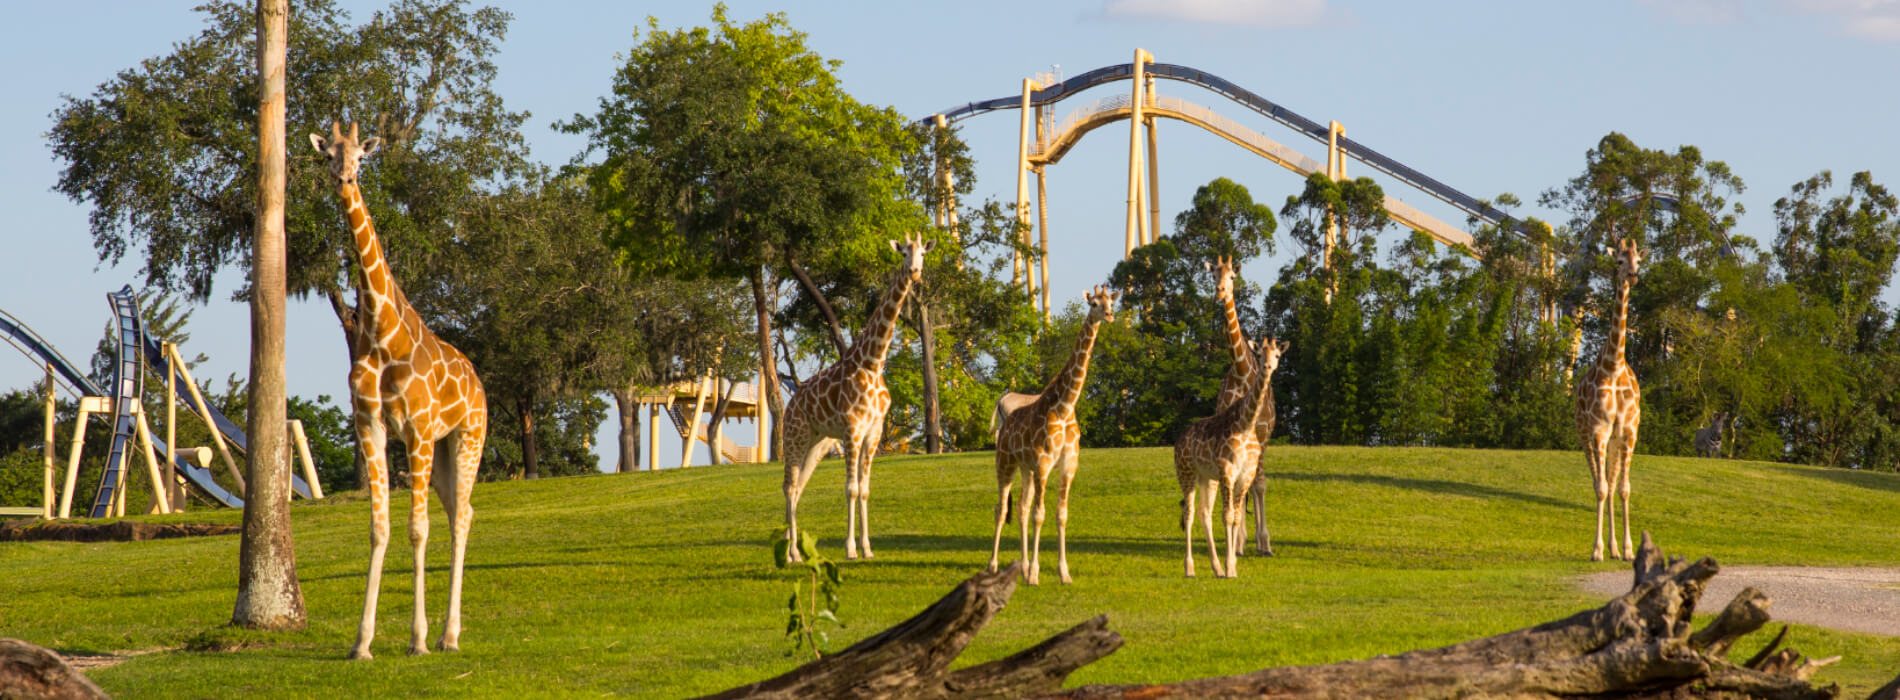 See the Giraffe at Busch Gardens Tampa Bay